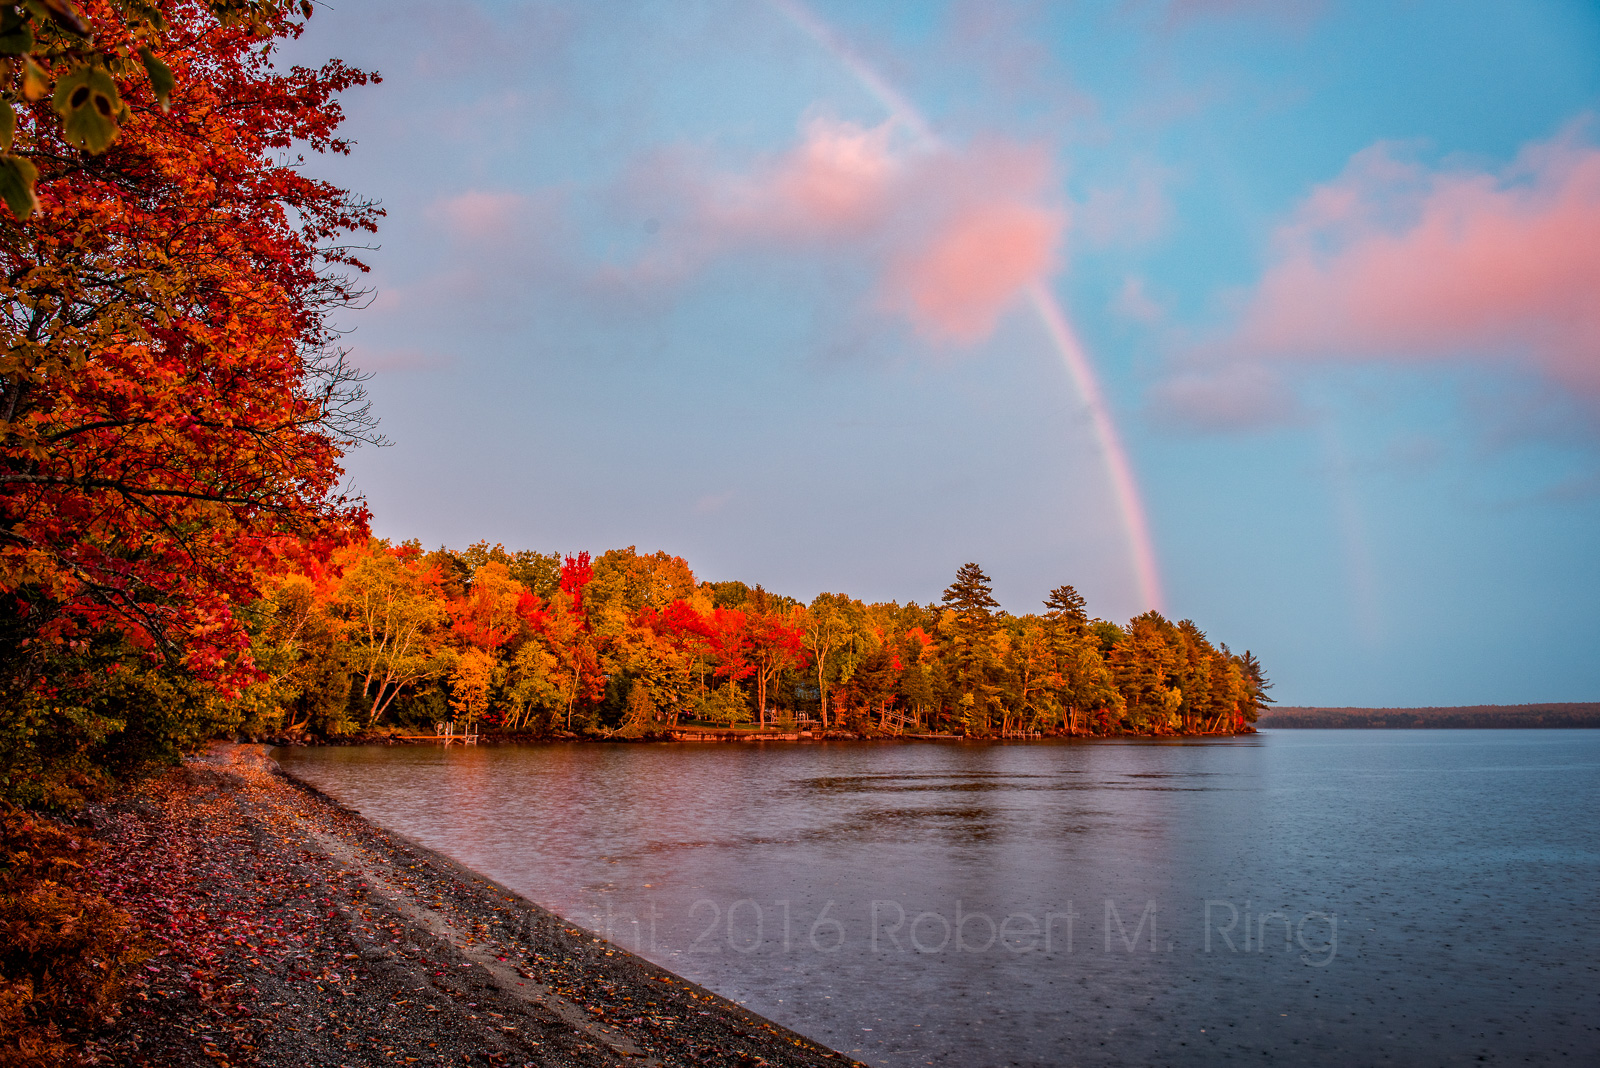 Camp, Schoodic lake, rainbow, maine, new england, weather, rain, photo